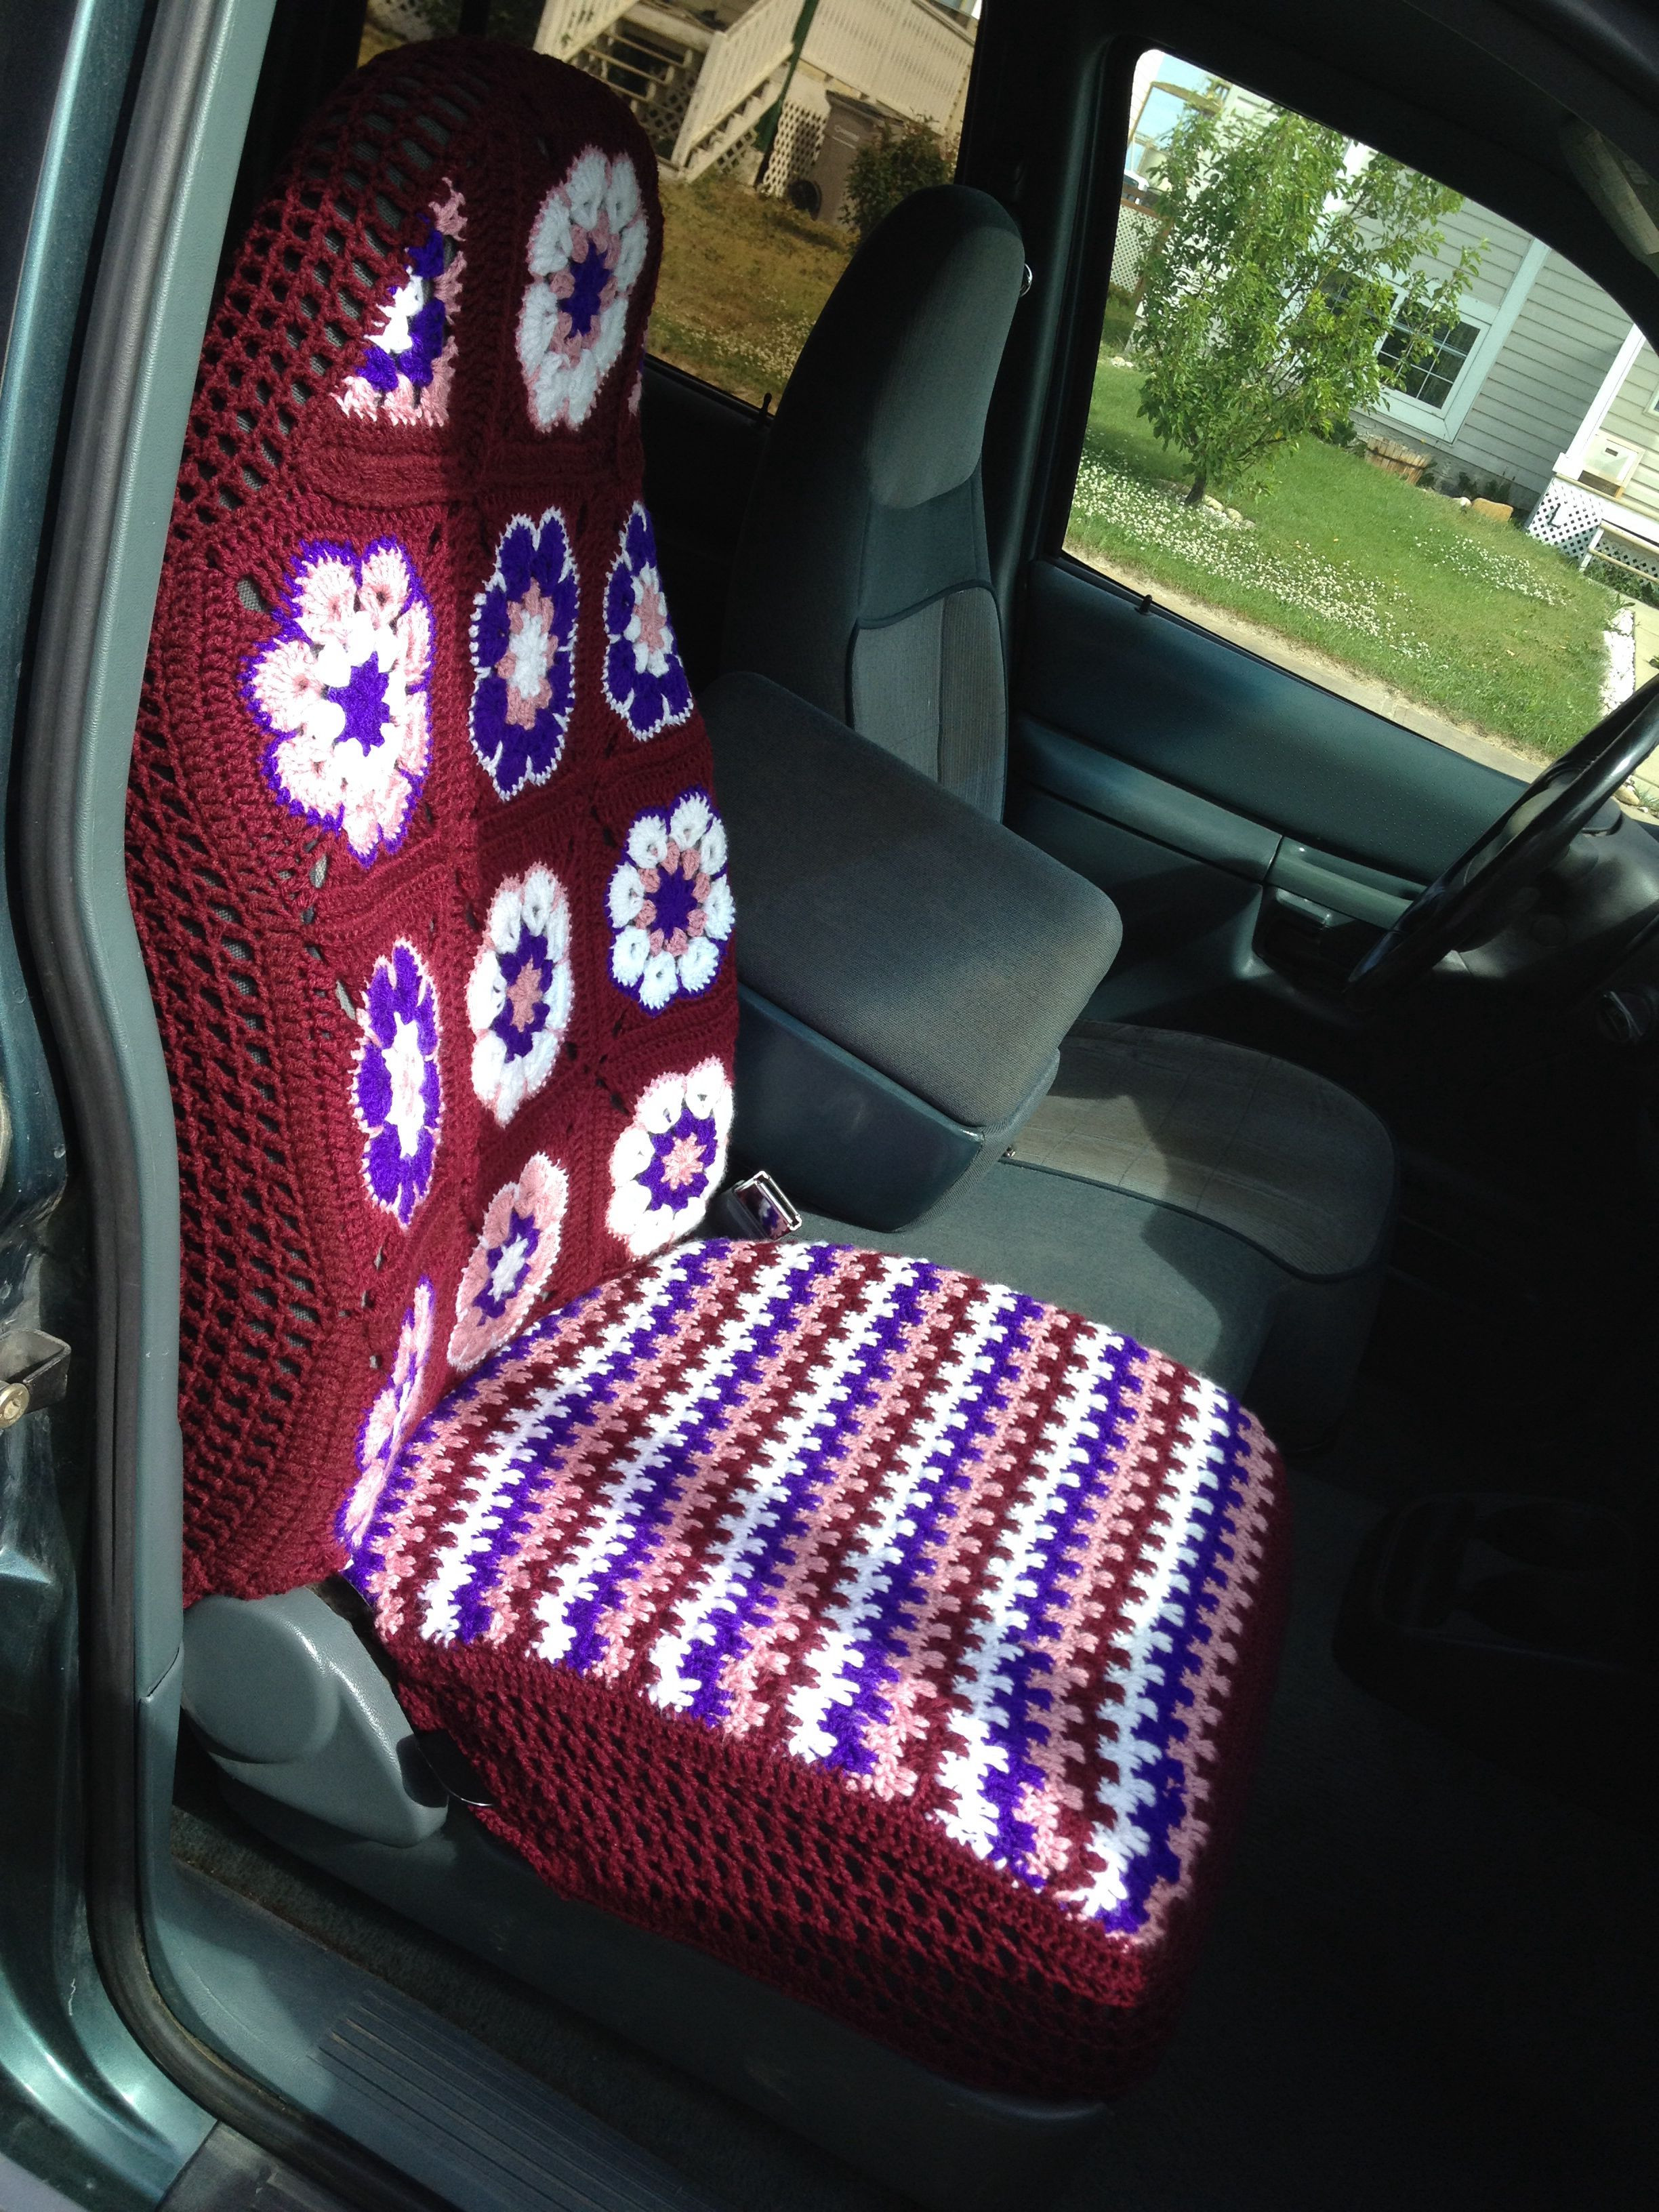 Best Of Crochet Car Seat Cover No Pattern Just Winged It Crochet Seat Cover Of Beautiful Crochet Car Front Seat Cover Aran Grey Heather Ccfsc1a Crochet Seat Cover